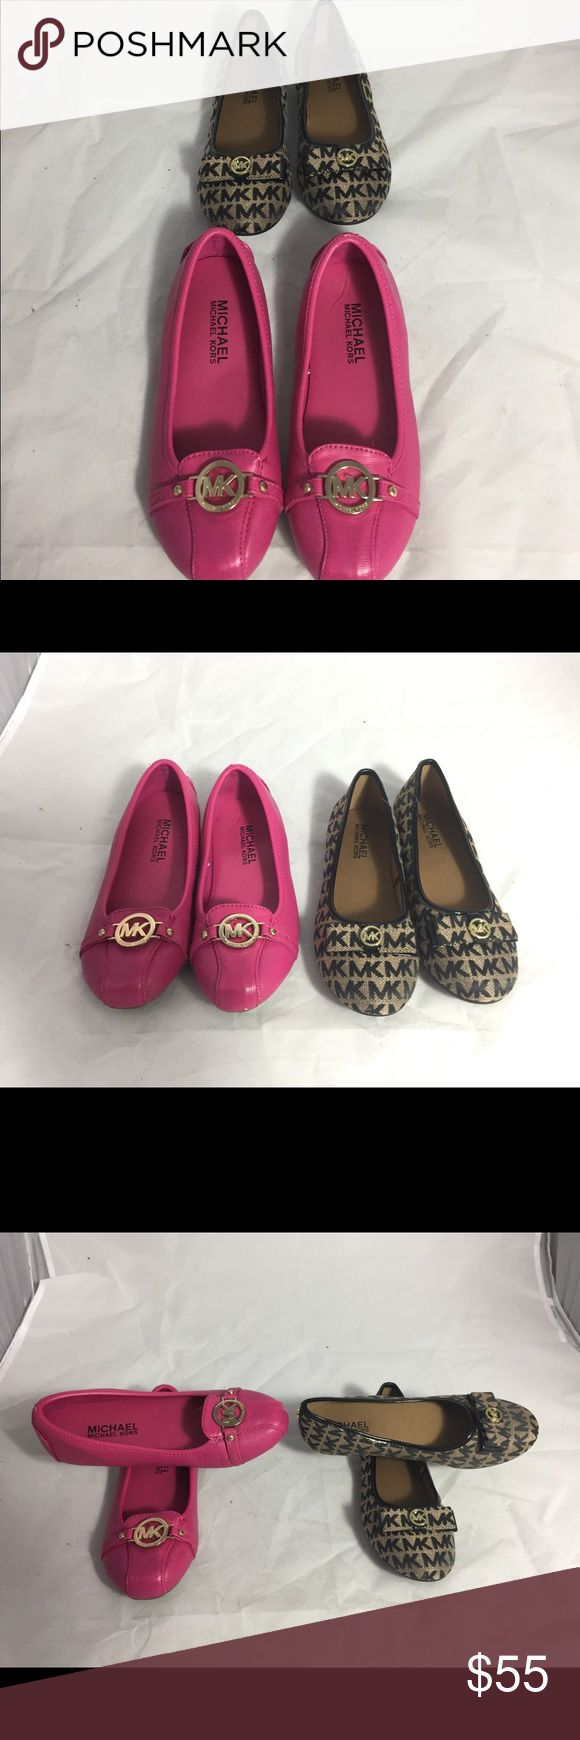 2 Pairs of MICHAEL by Michael Kors flats 2Y Here are 2 pairs of Michael Kor Girls flats. One pair, the fuschia Fukton Mia flats are gently used and the Tan/Black BOLINA2 flats are like New. MICHAEL Michael Kors Shoes